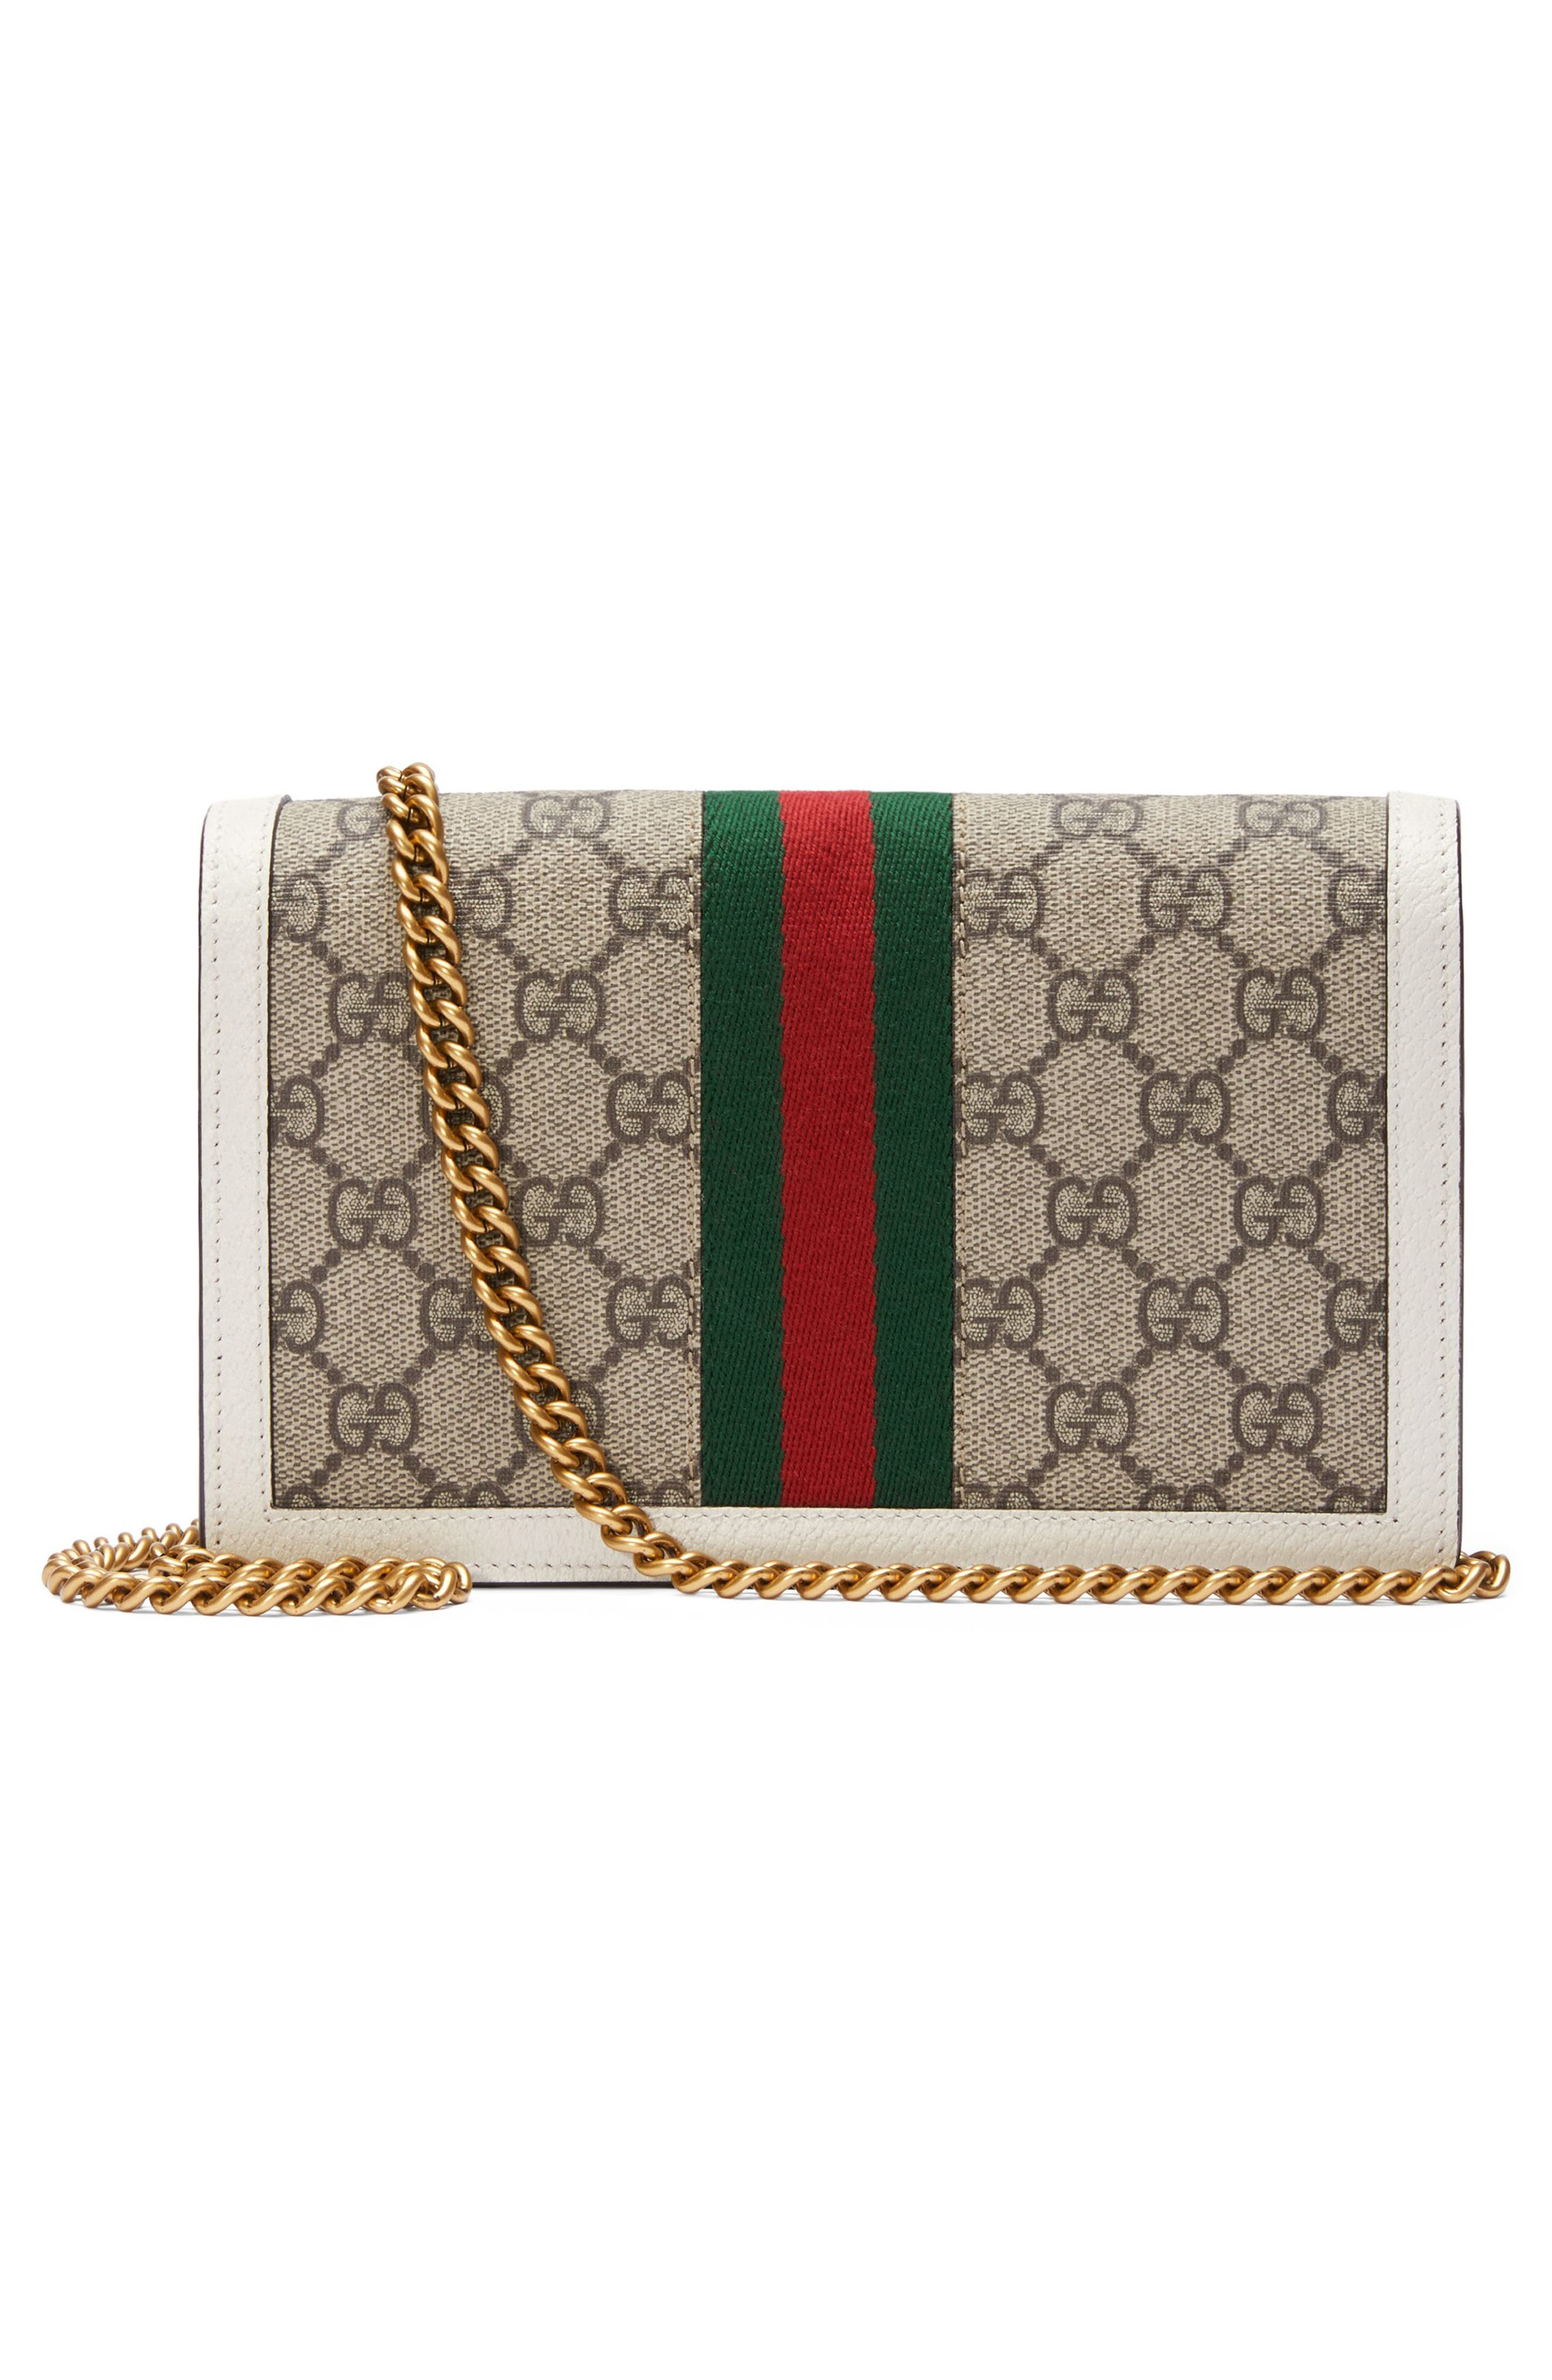 Queen Margaret GG Supreme Canvas Wallet on a Chain,                             Alternate thumbnail 2, color,                             250